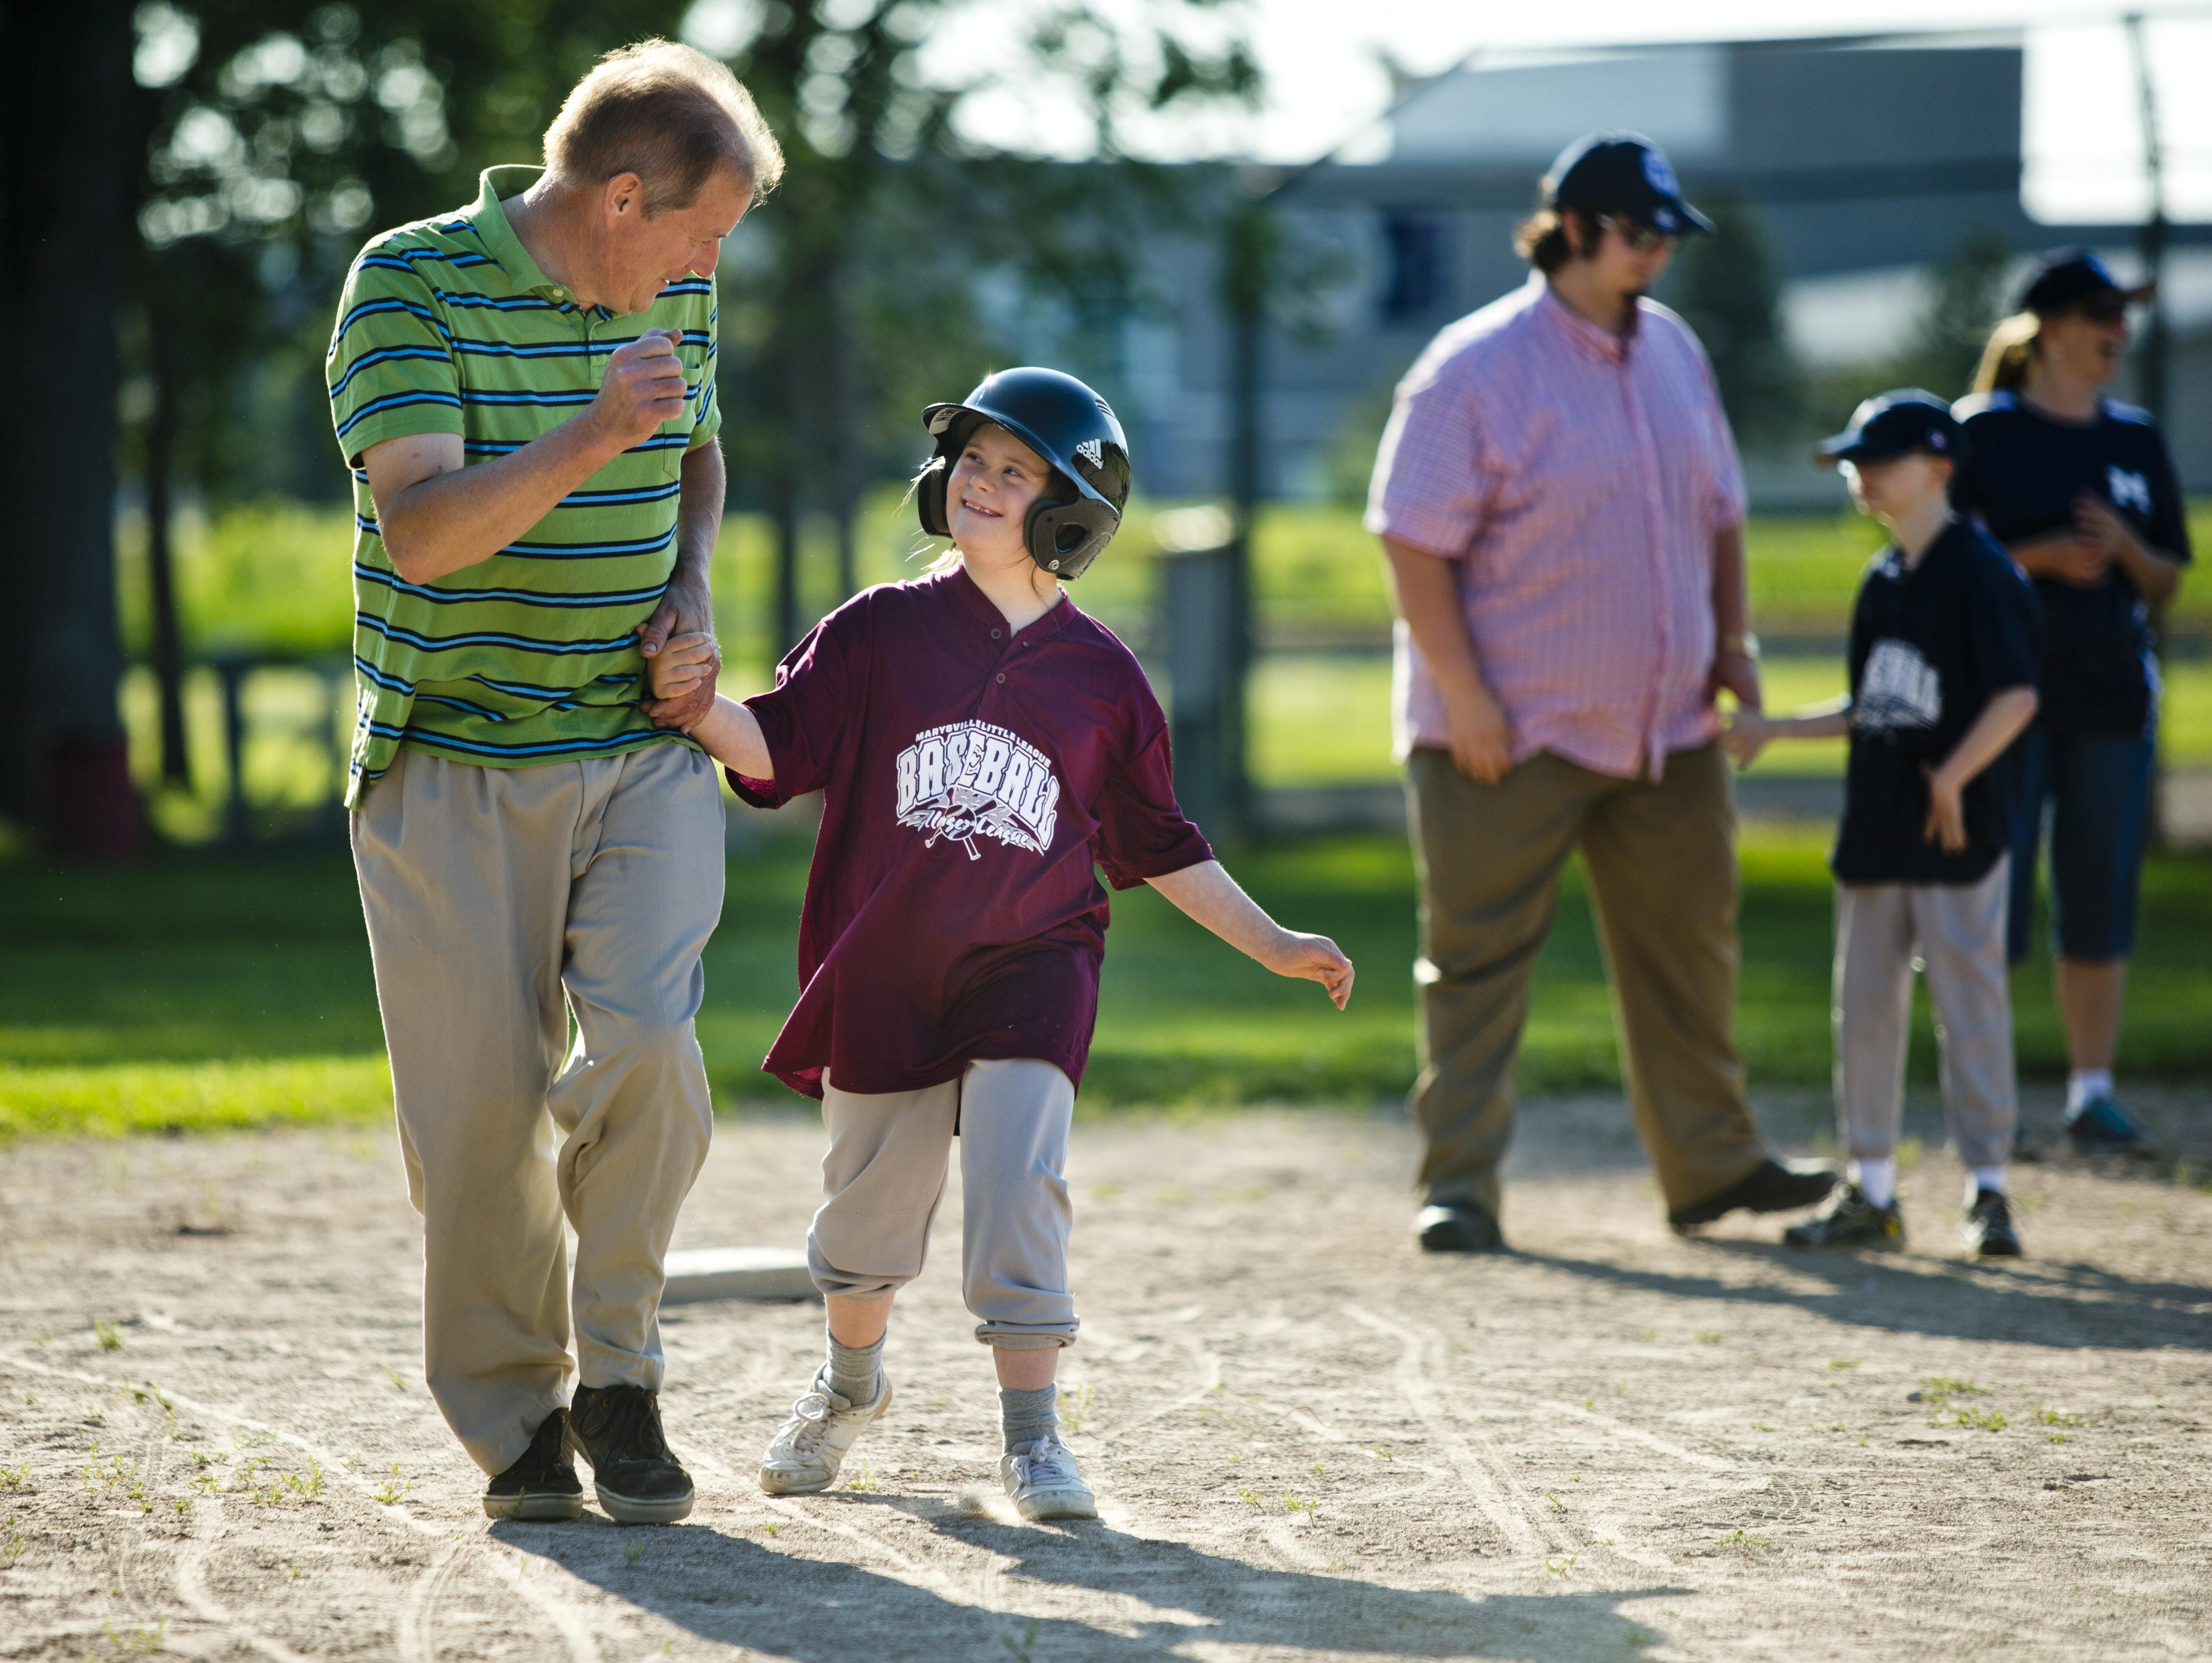 Dan Rhein, of Port Huron, runs to home plate with his daughter Claire Rhein, 11, during a Marysville Little League Challenger Division baseball game Thursday, July 2, 2015 at Marysville Municipal Park.